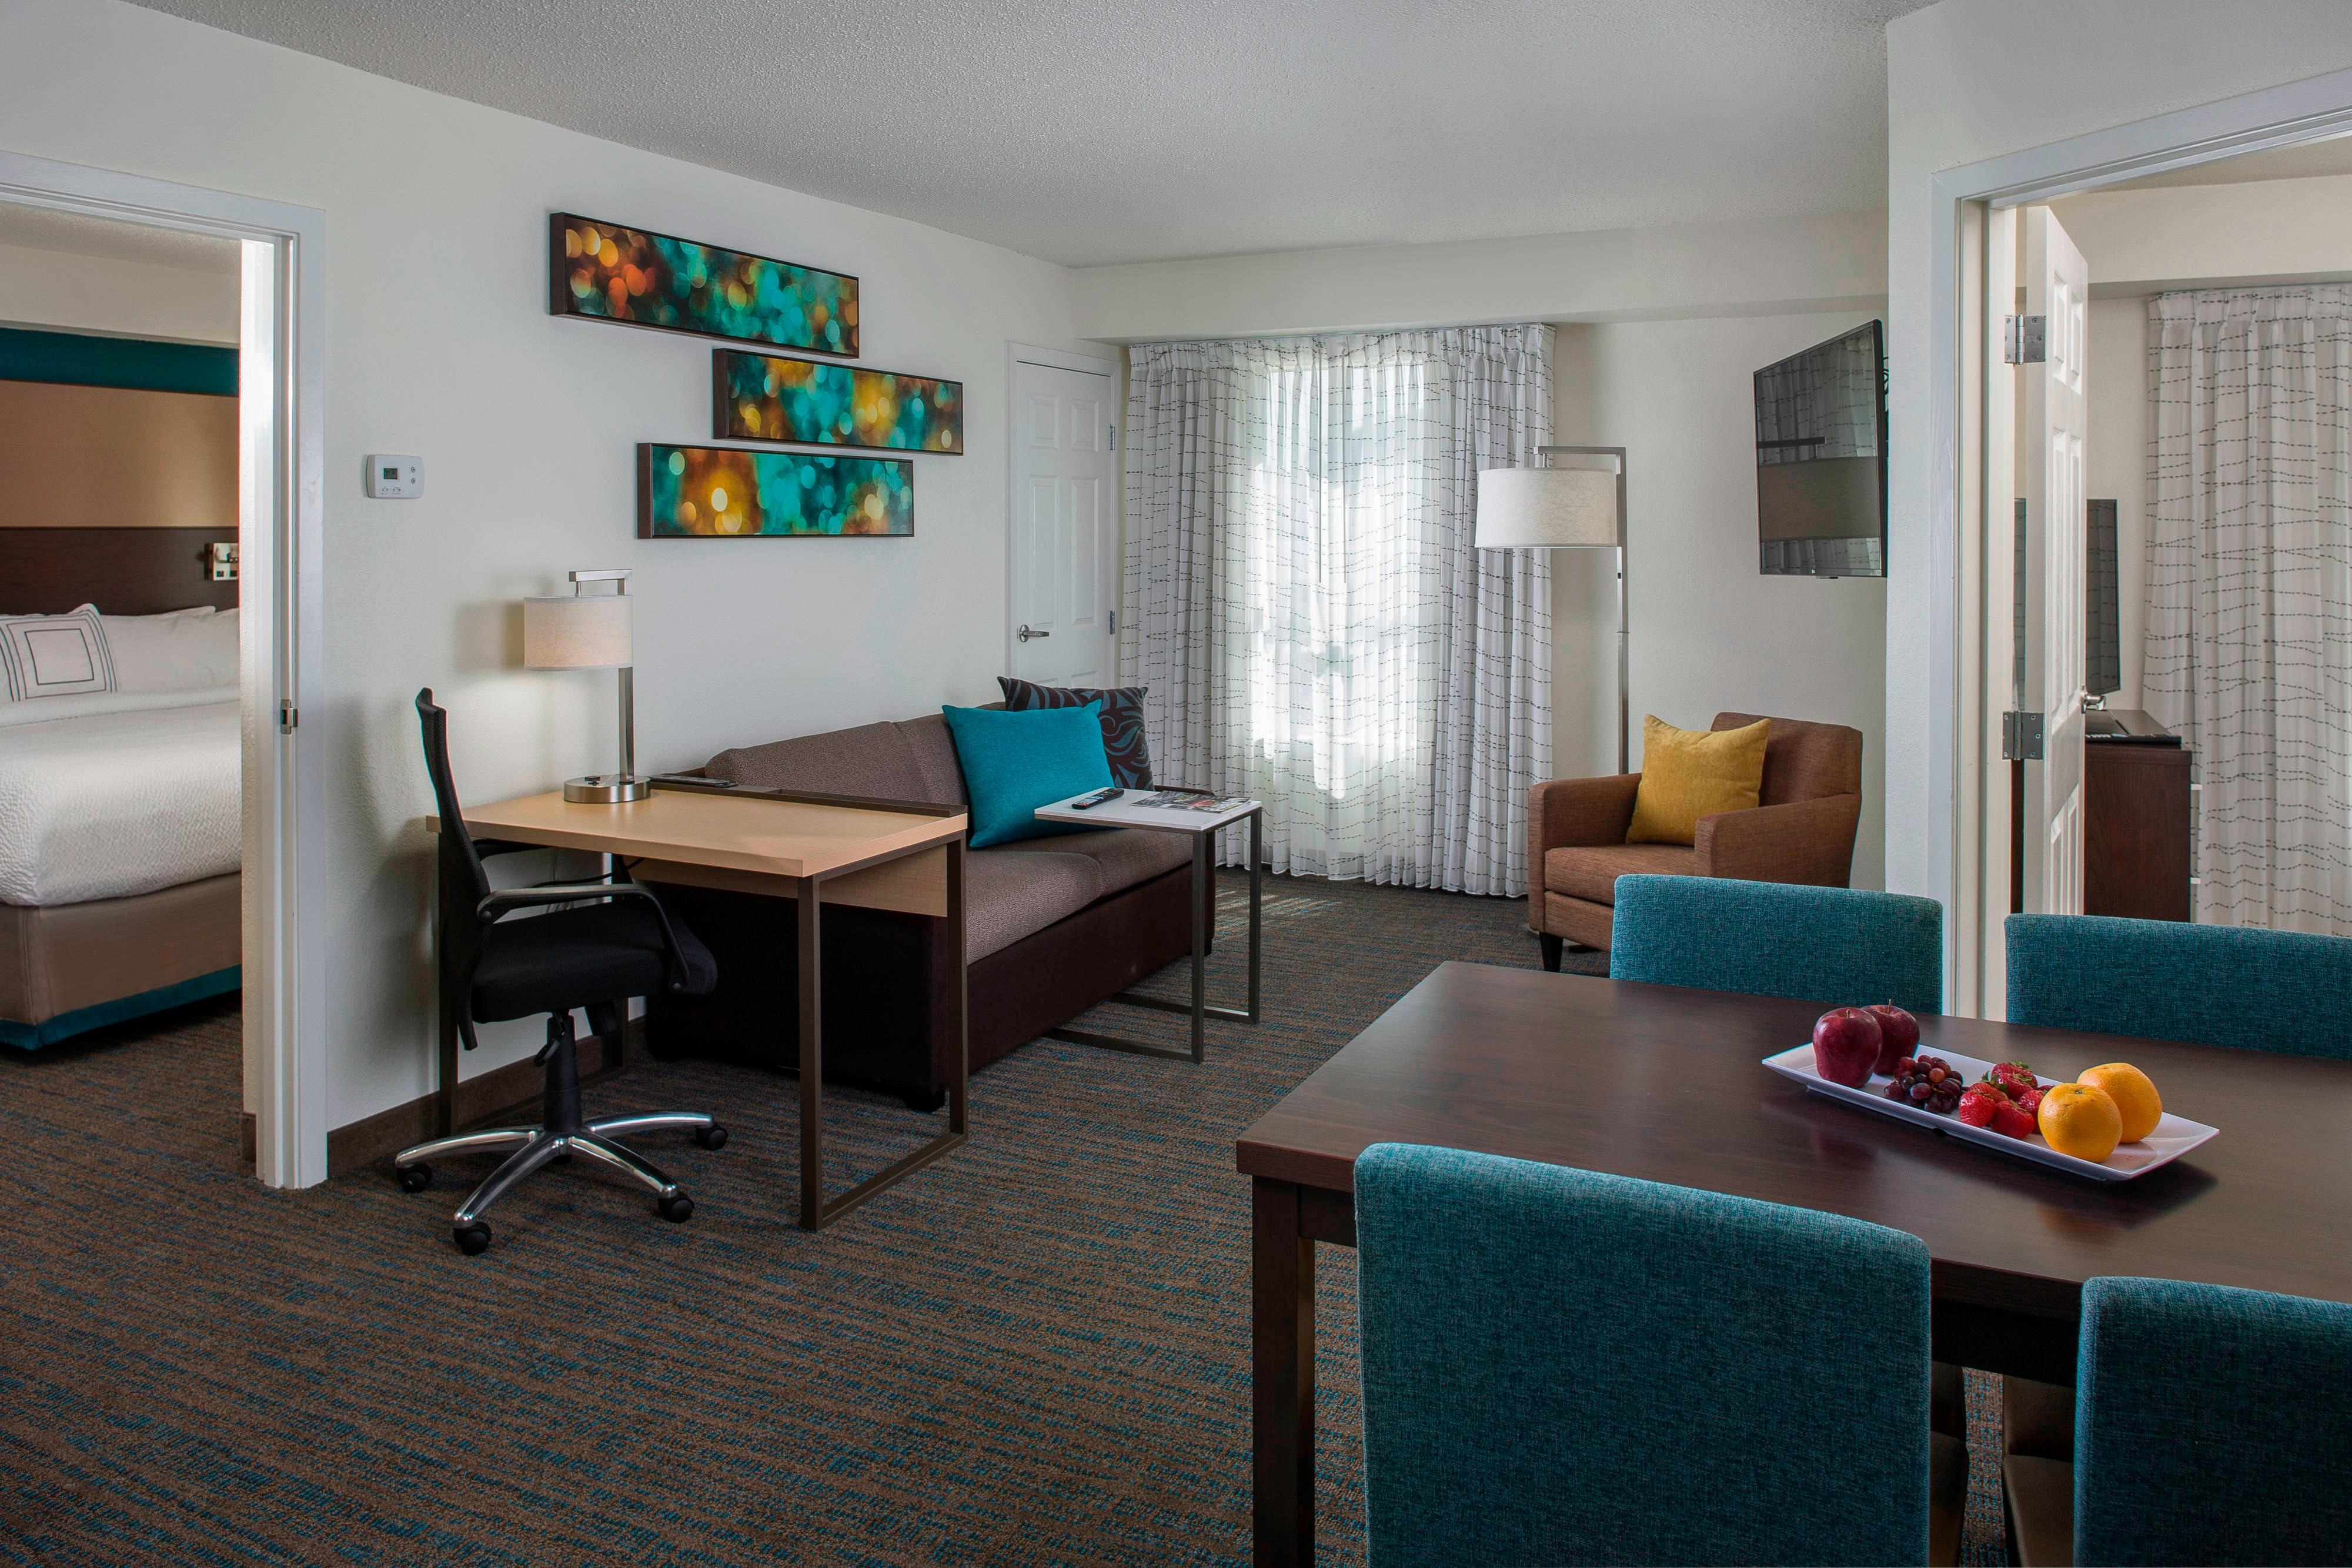 liberty orleans clsc newly rooms international hor renovated hotel ewreb newark hotels airport elizabeth inn bedroom extended stay nj in new suites residence suite